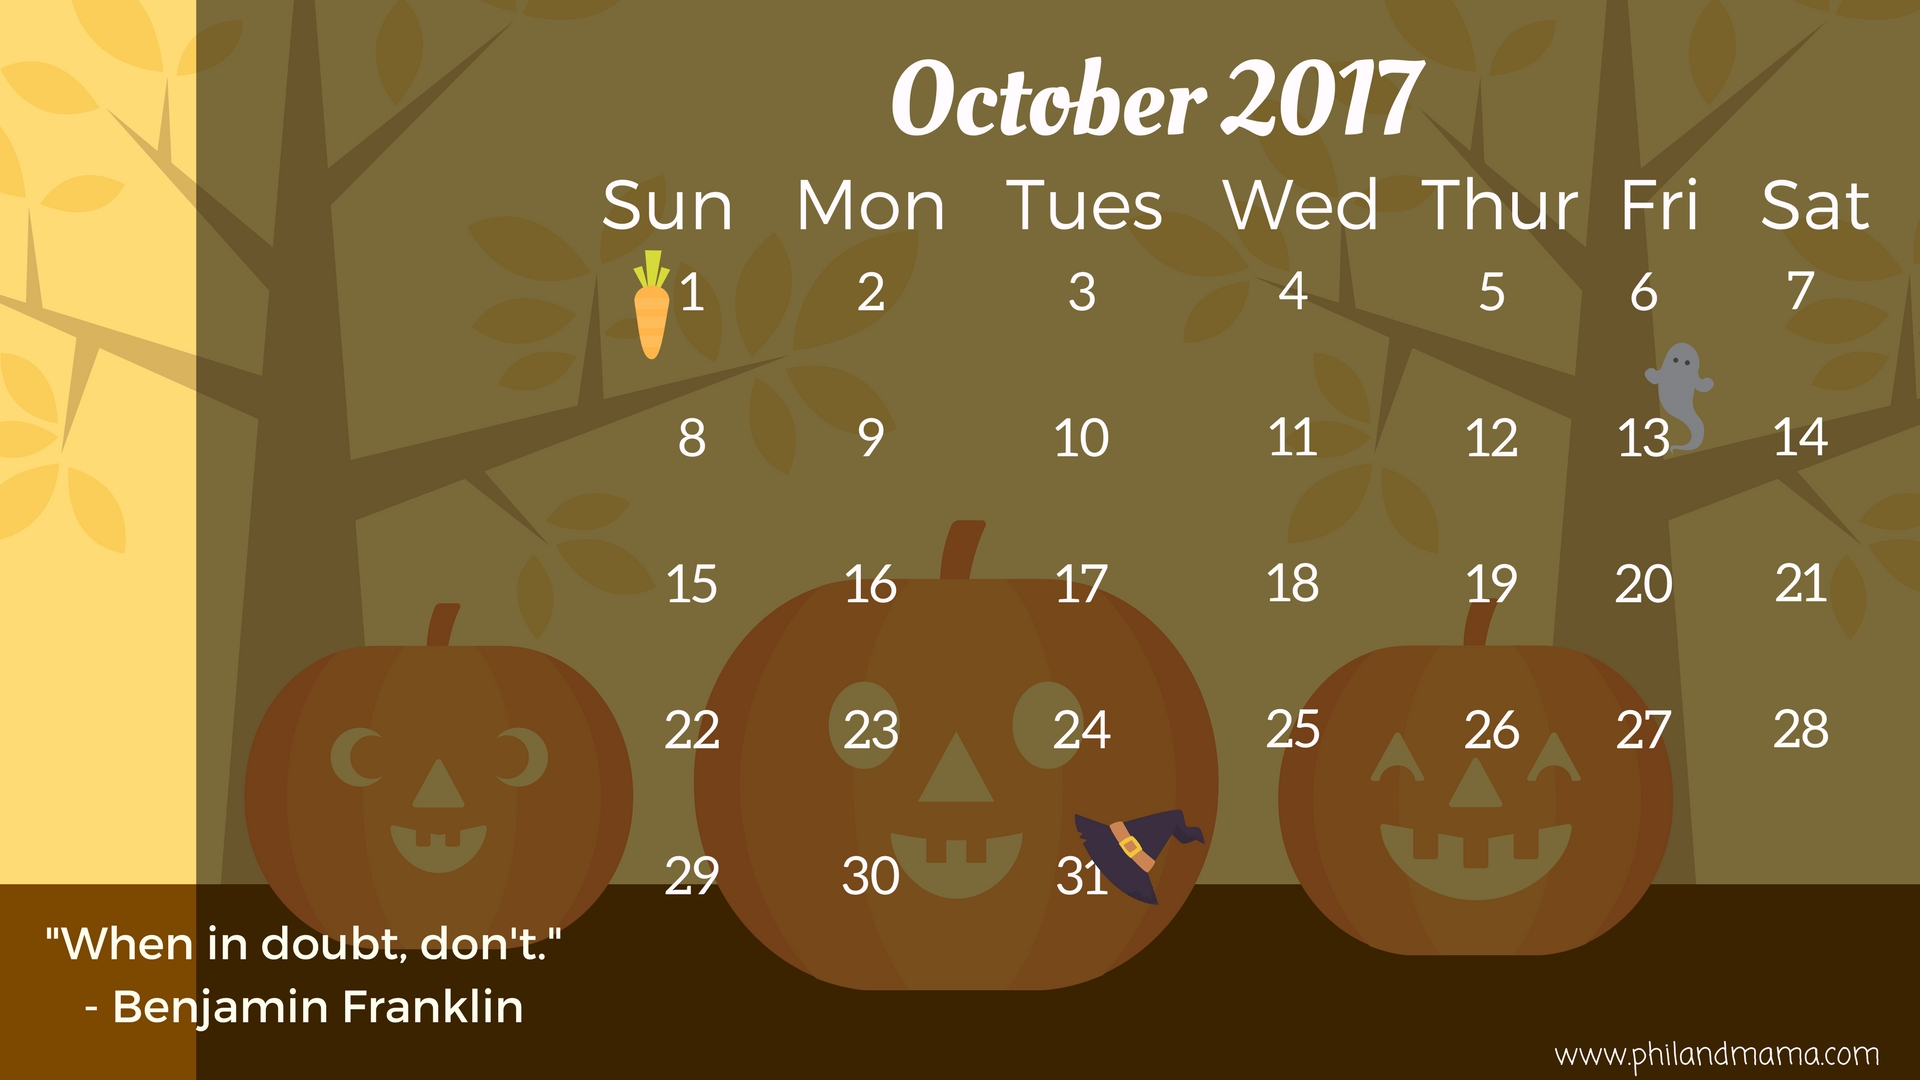 October 2017 FREE PRINTABLE CALENDAR.CLICK ON THE IMAGE FOR THE PDF FILE. FOR THE IMAGE FILE, RIGHT-CLICK AND SAVE AS.